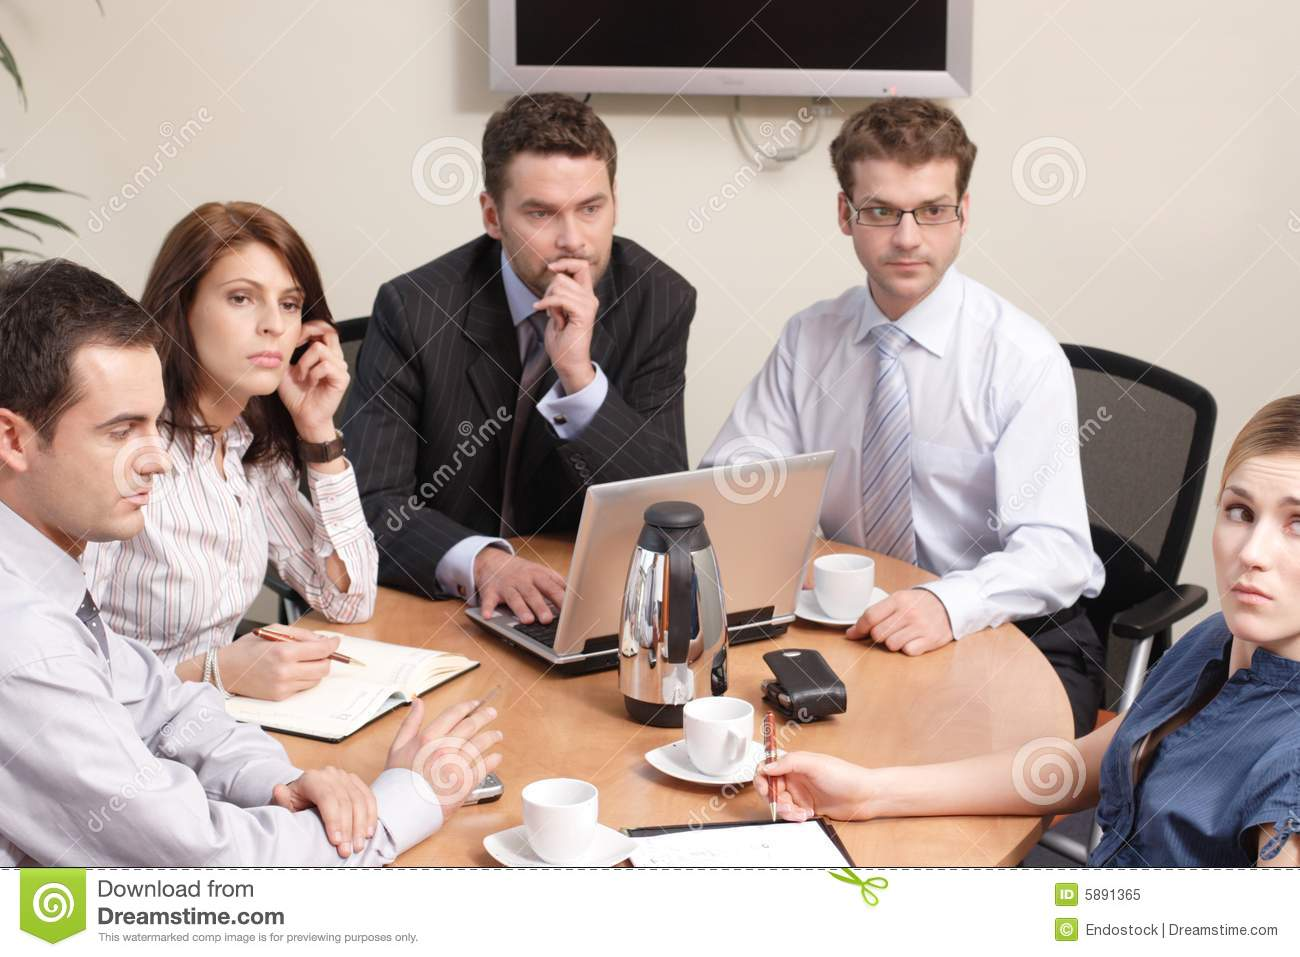 Group solving problems royalty free stock photo image 5891365